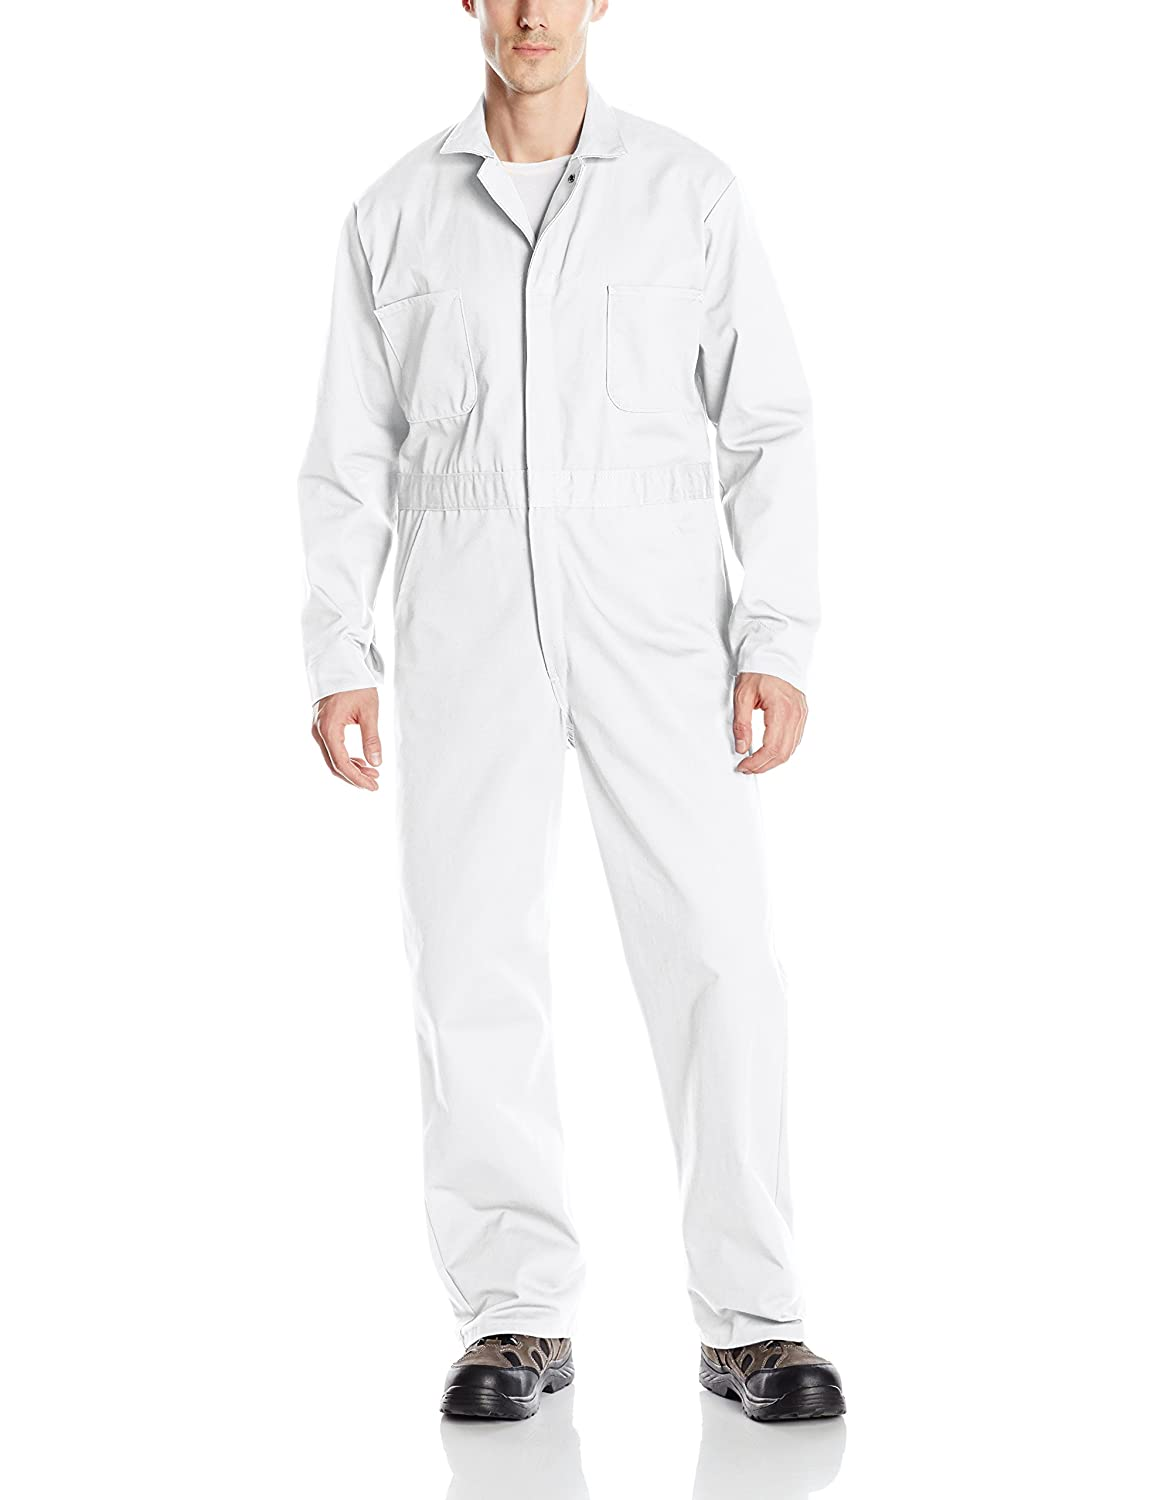 Red Kap Men's Snap Front Cotton Coverall, Oversized Fit, Long Sleeve Red Kap Men' s Apparel CC14